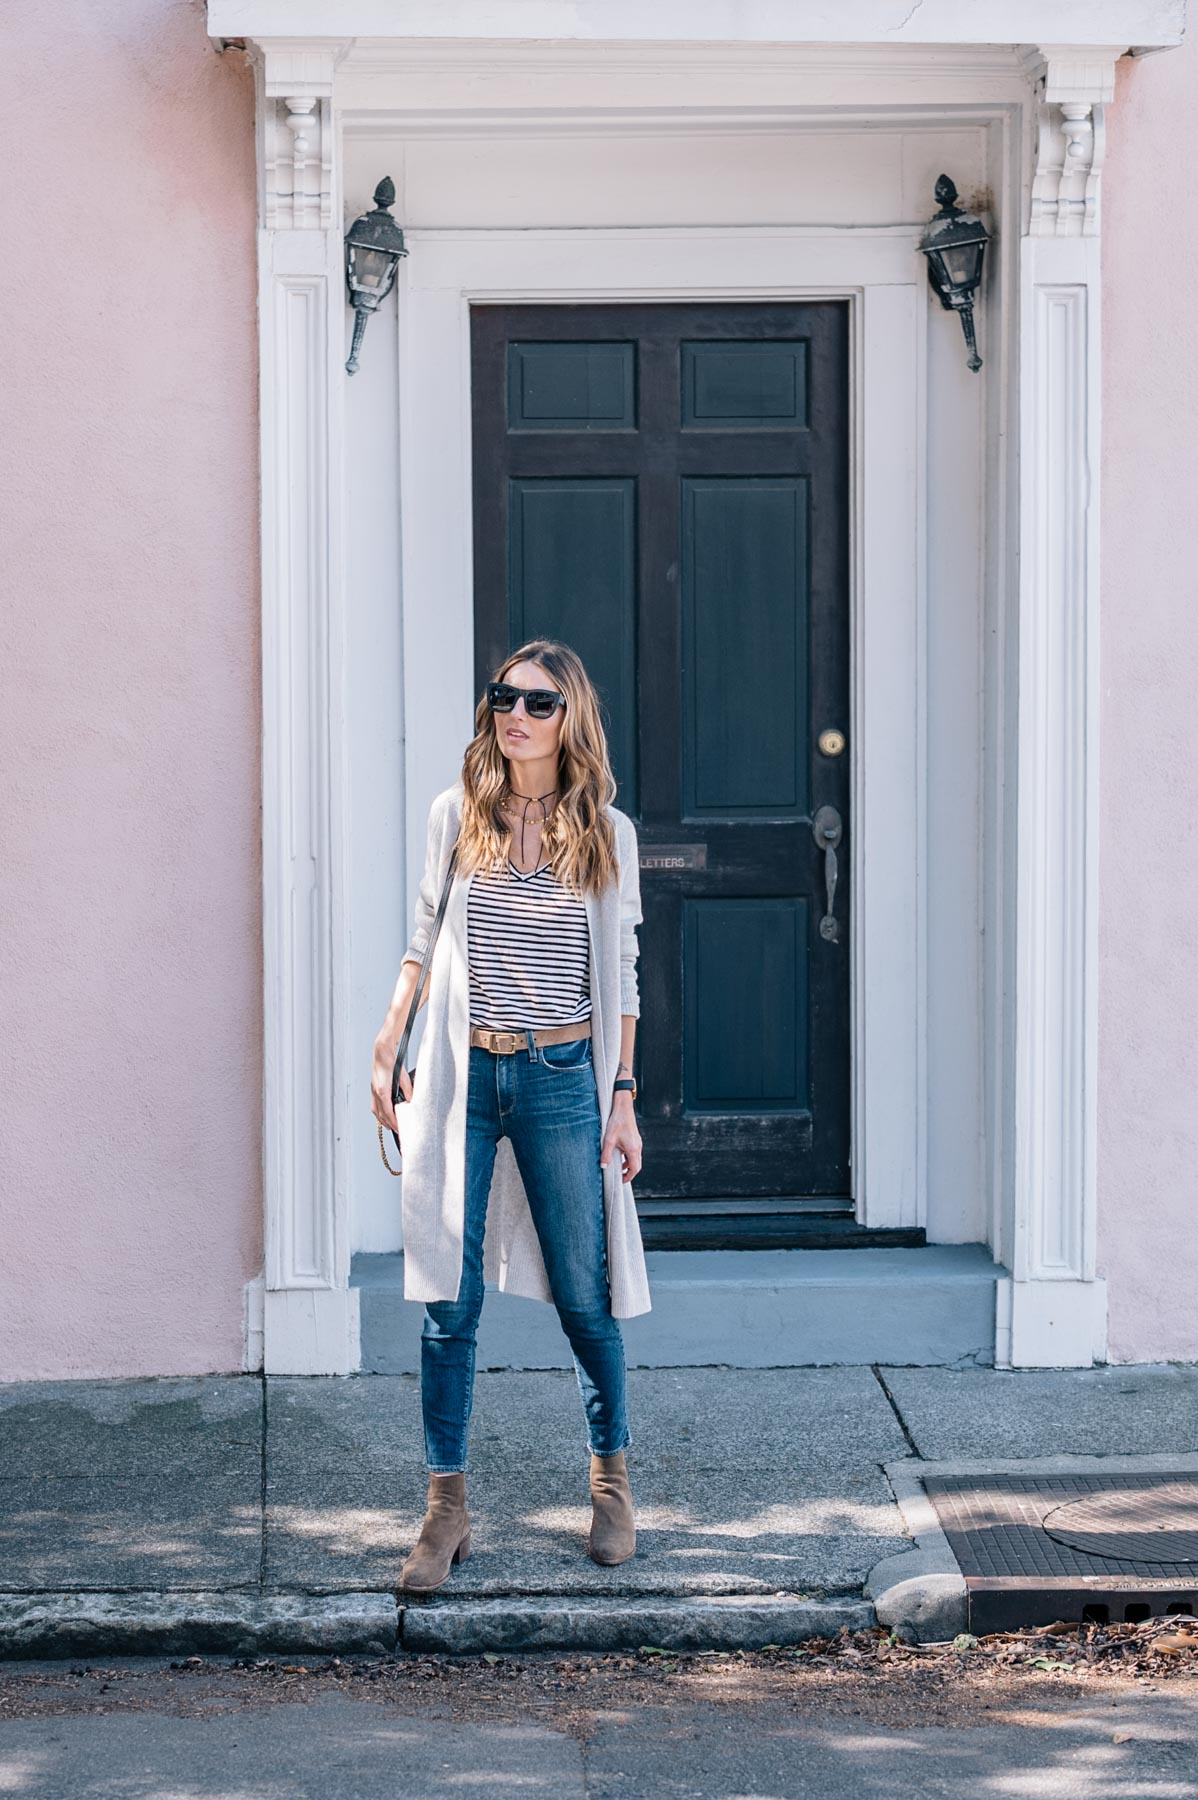 Jess Ann Kirby styles a cashmere cardigan with paige skinny jeans and dolce vita ankle boots for fall